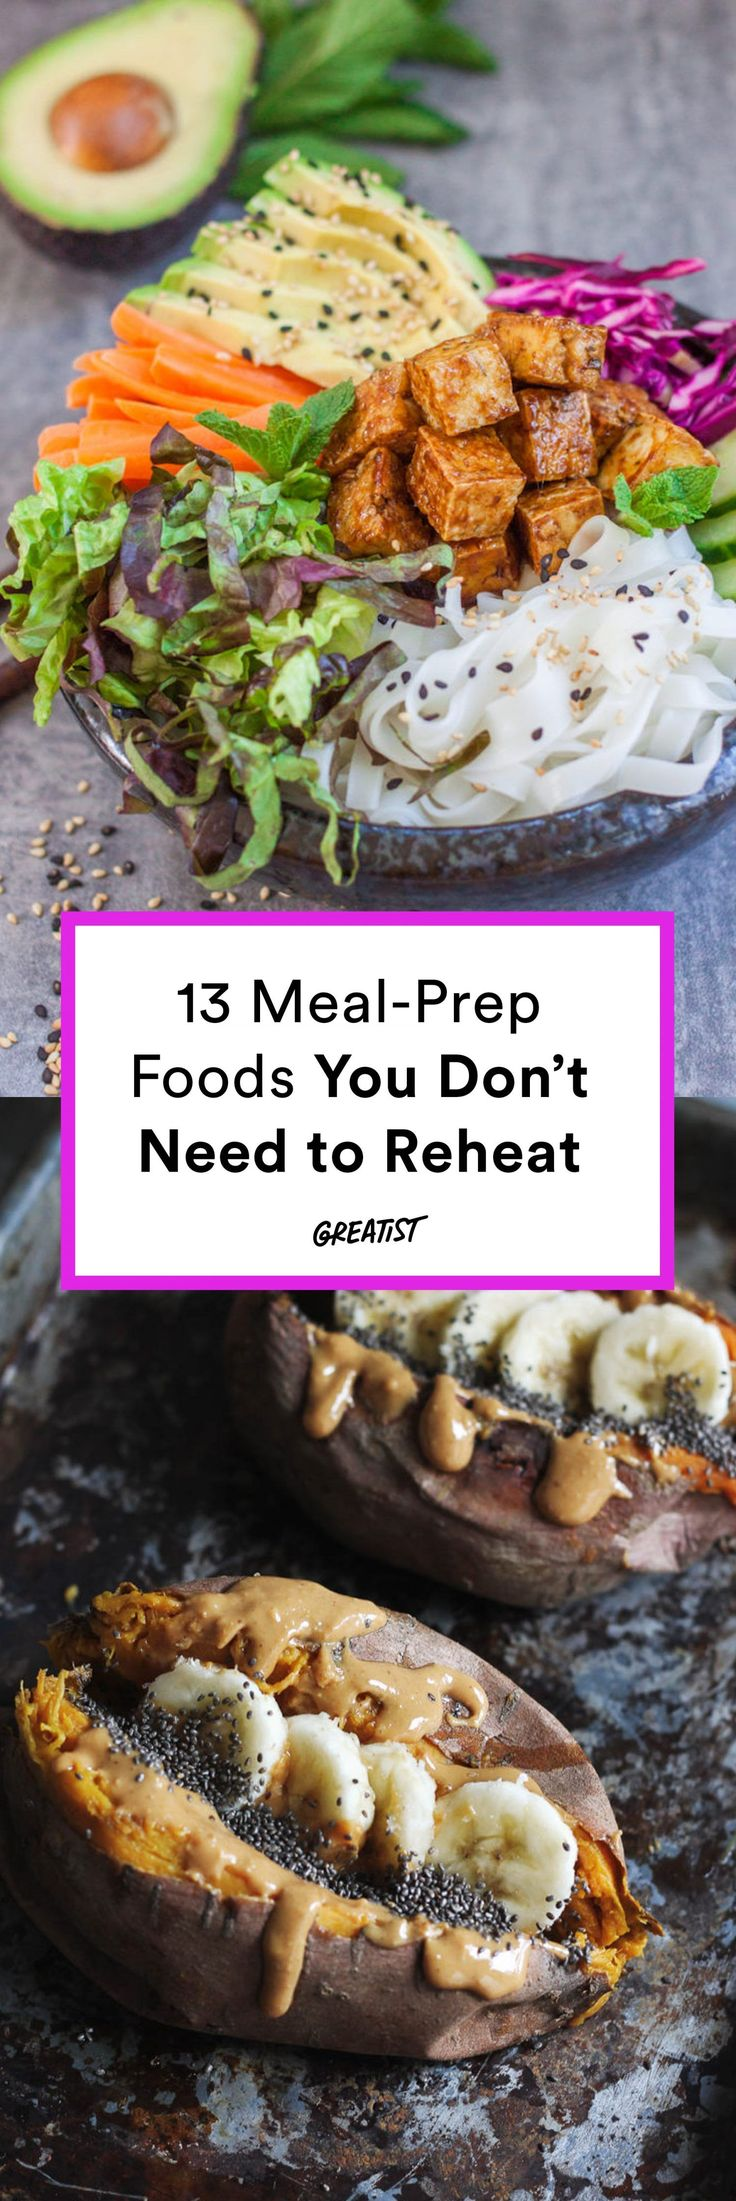 Because there's always a line for the office microwave. #greatist http://greatist.com/eat/meal-prep-foods-you-dont-need-to-reheat